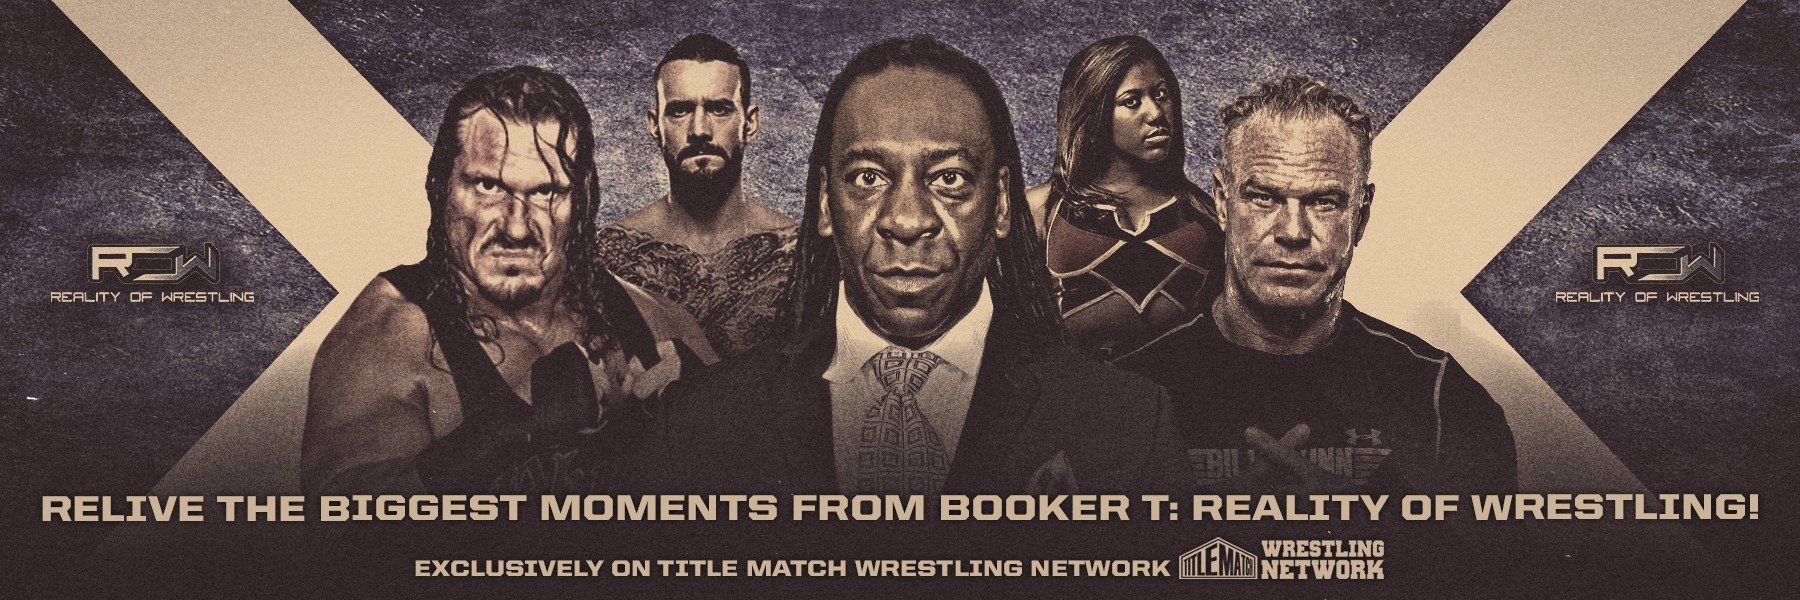 The official archives from Booker T: Reality of Wrestling!